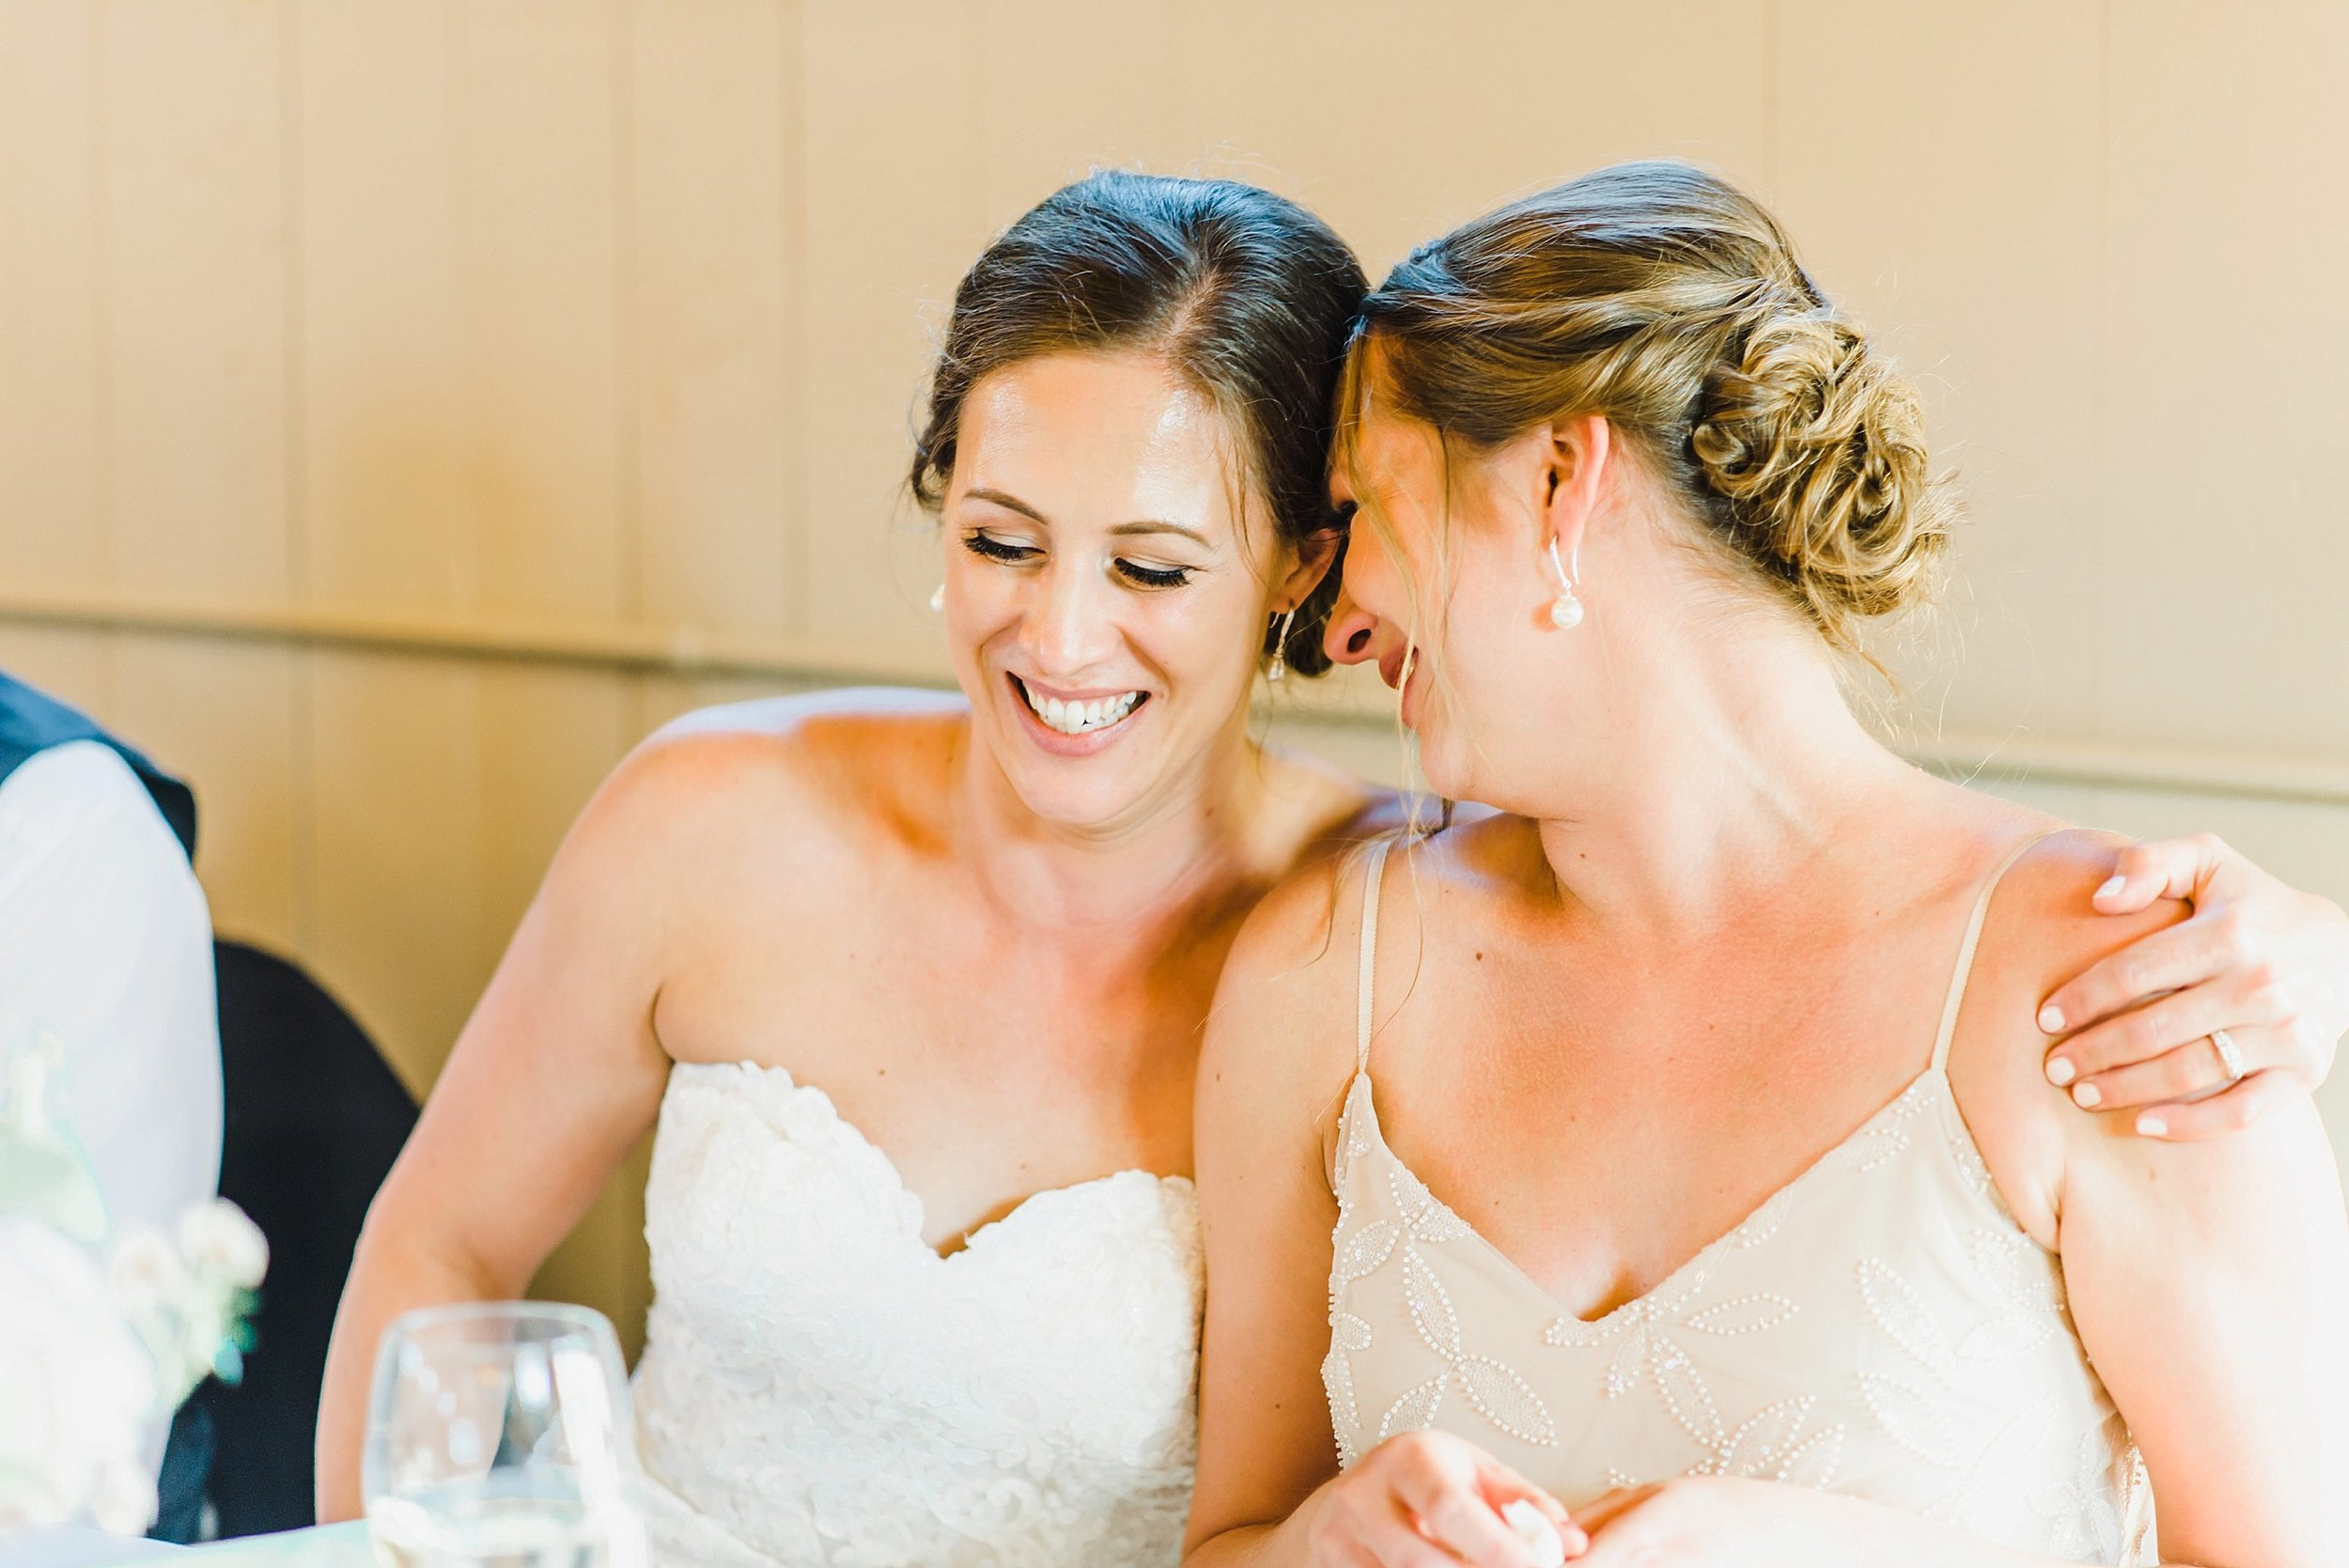 A heartfelt moment between sisters after the bride's sister gave an emotional speech!